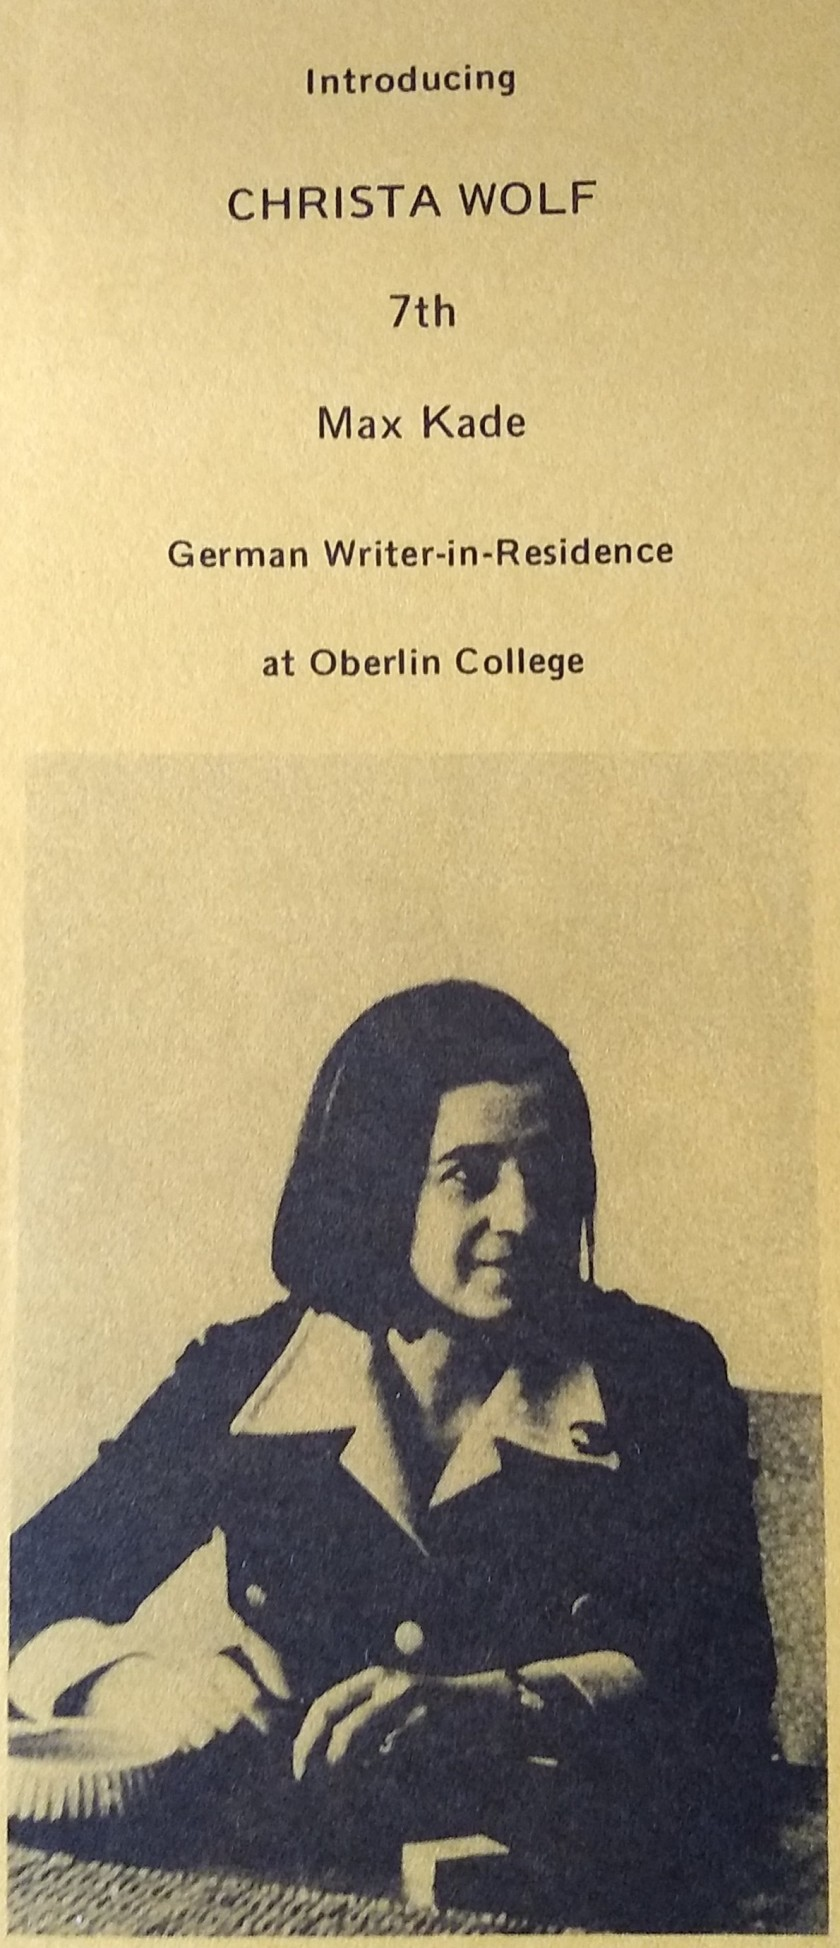 christa wolf brochure front